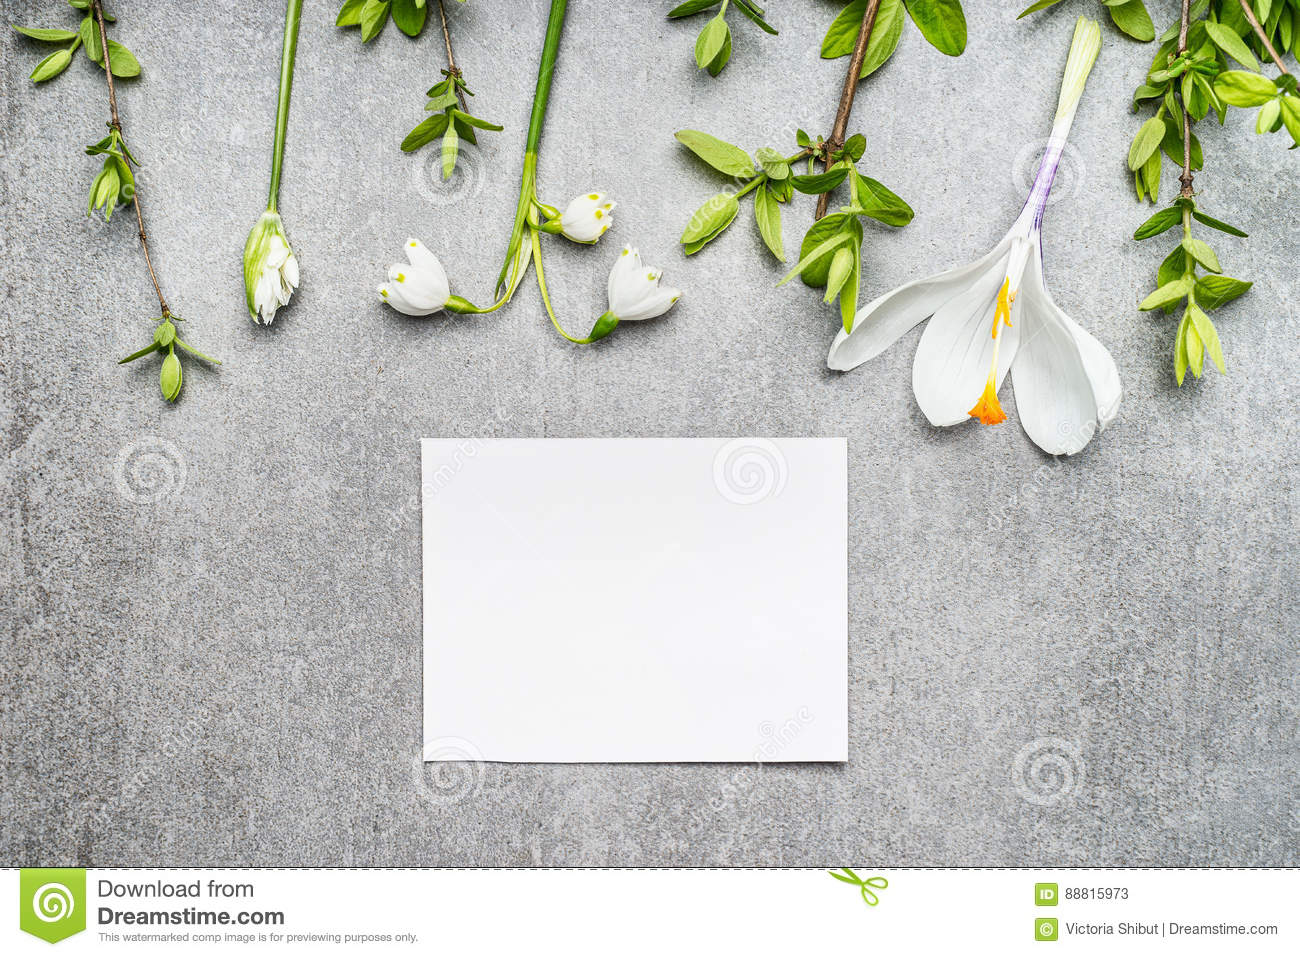 Blank white card with snowdrop, crocuses flowers and spring twigs, top view. Springtime